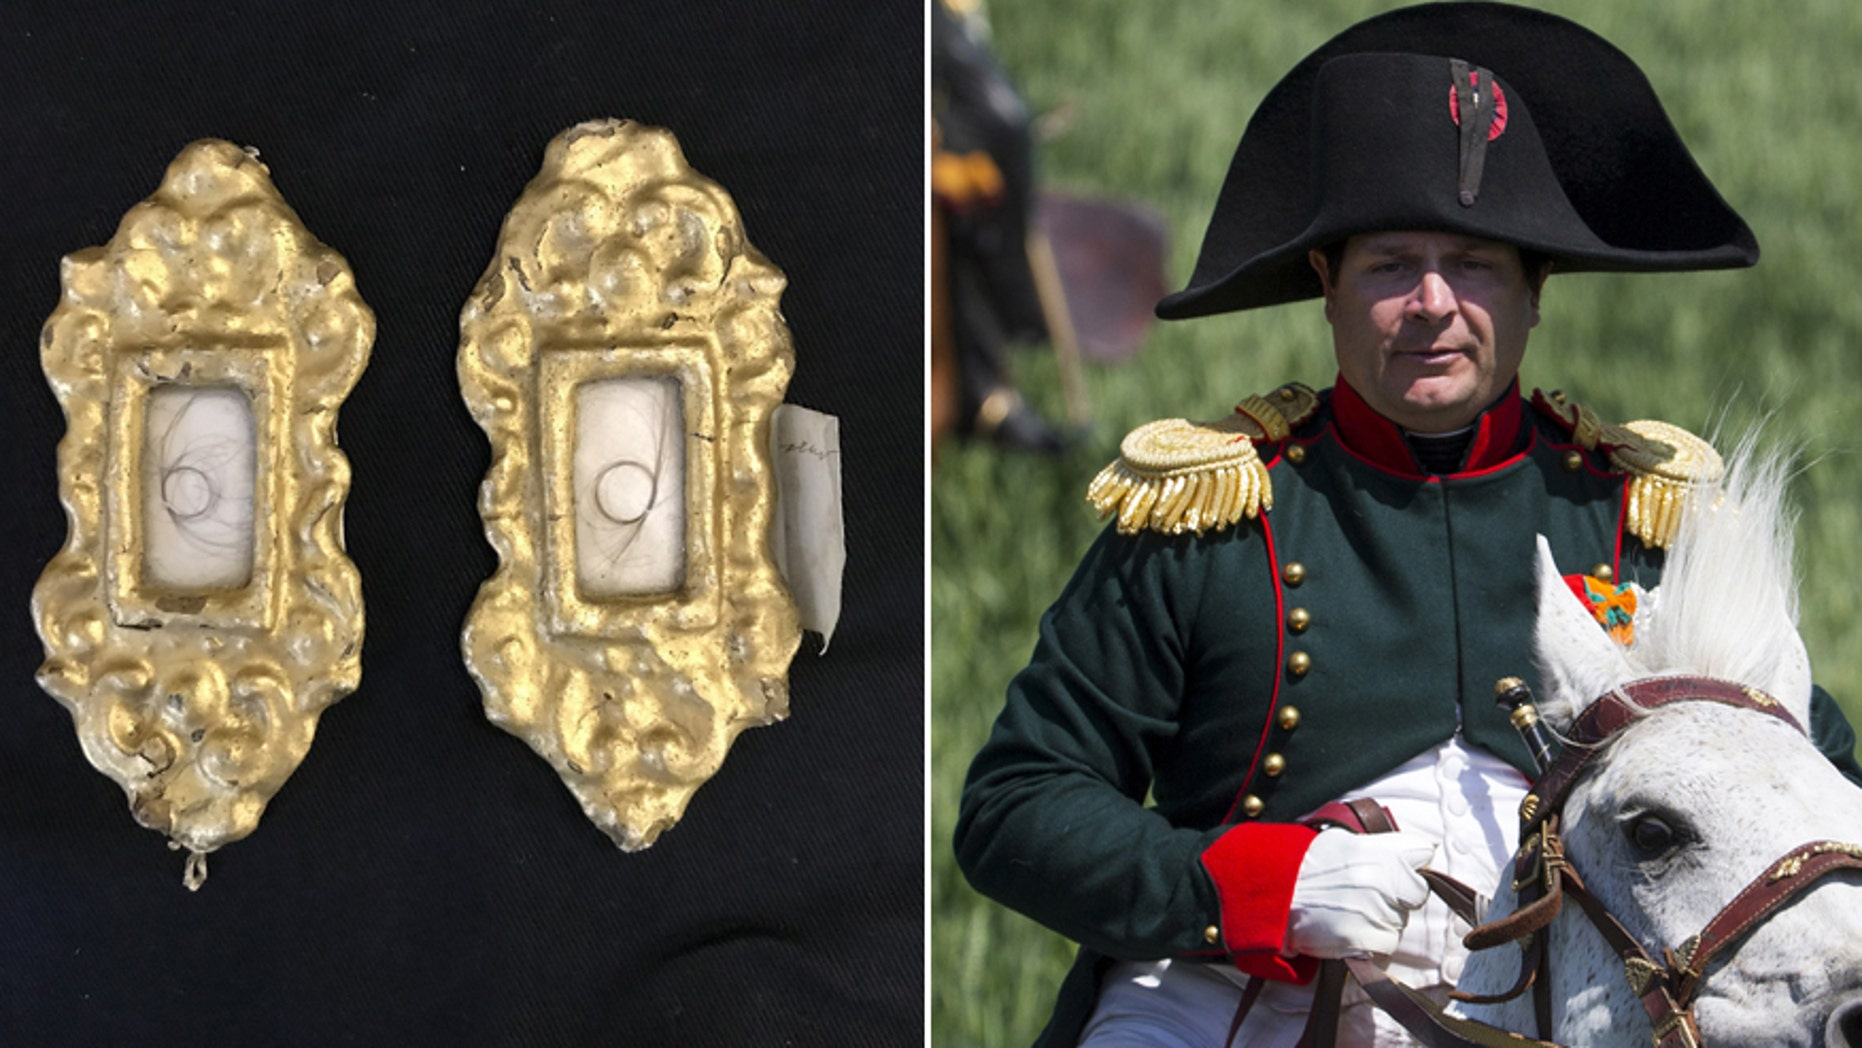 The locket containing locks of hair from Napoleon and Empress Josephine (Henry Aldridge & Son)/File photo - Frenchman Frank Samson takes part in the re-enactment of the battle of Ligny, as French Emperor Napoleon, during the bicentennial celebrations for the Battle of Waterloo, in Ligny, Belgium, June 14, 2015.  (REUTERS/Yves Herman)